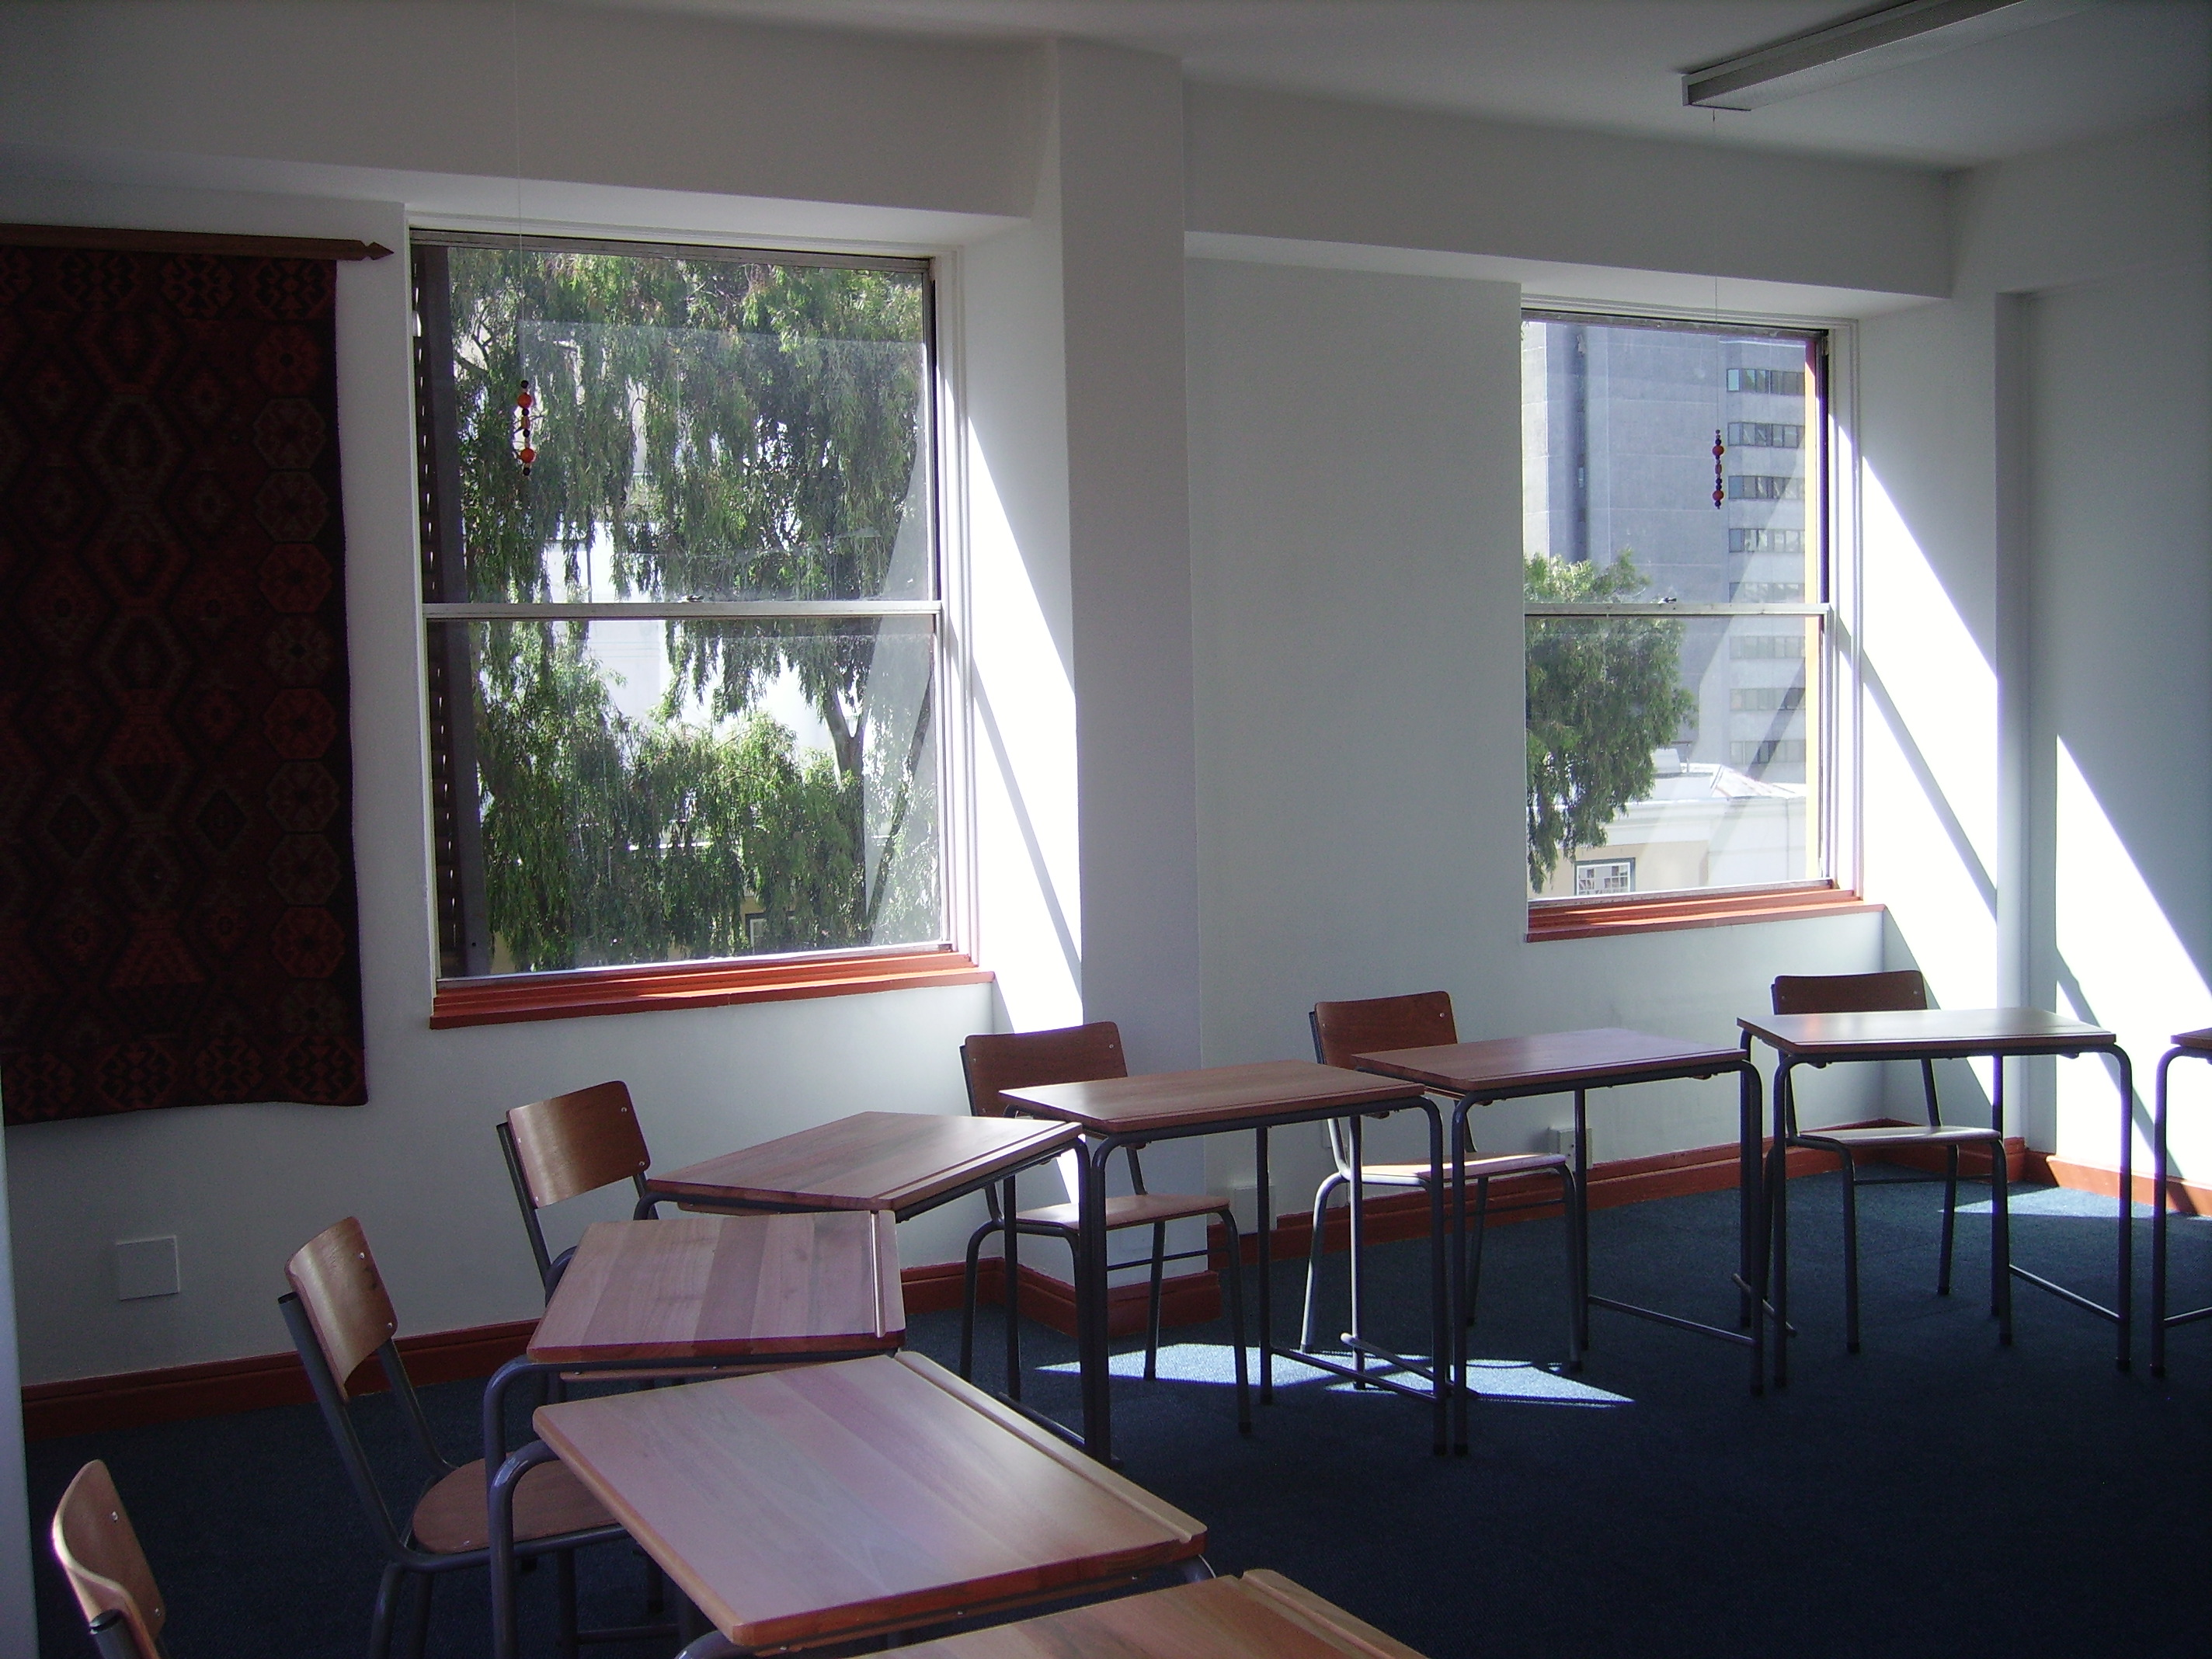 One of the Examination Rooms